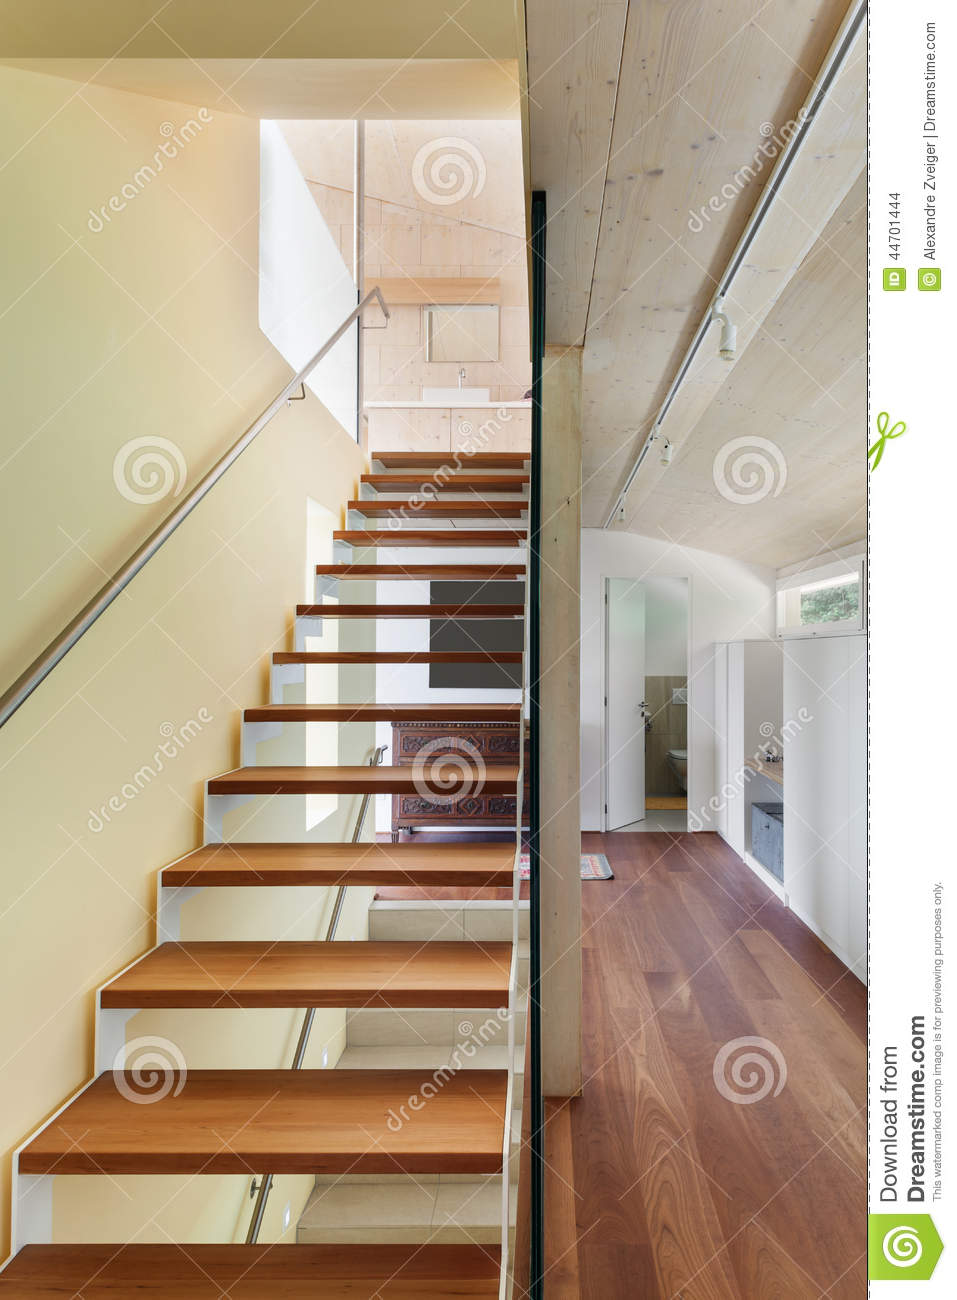 Architecture moderne int rieur escalier photo stock for Escalier moderne interieur